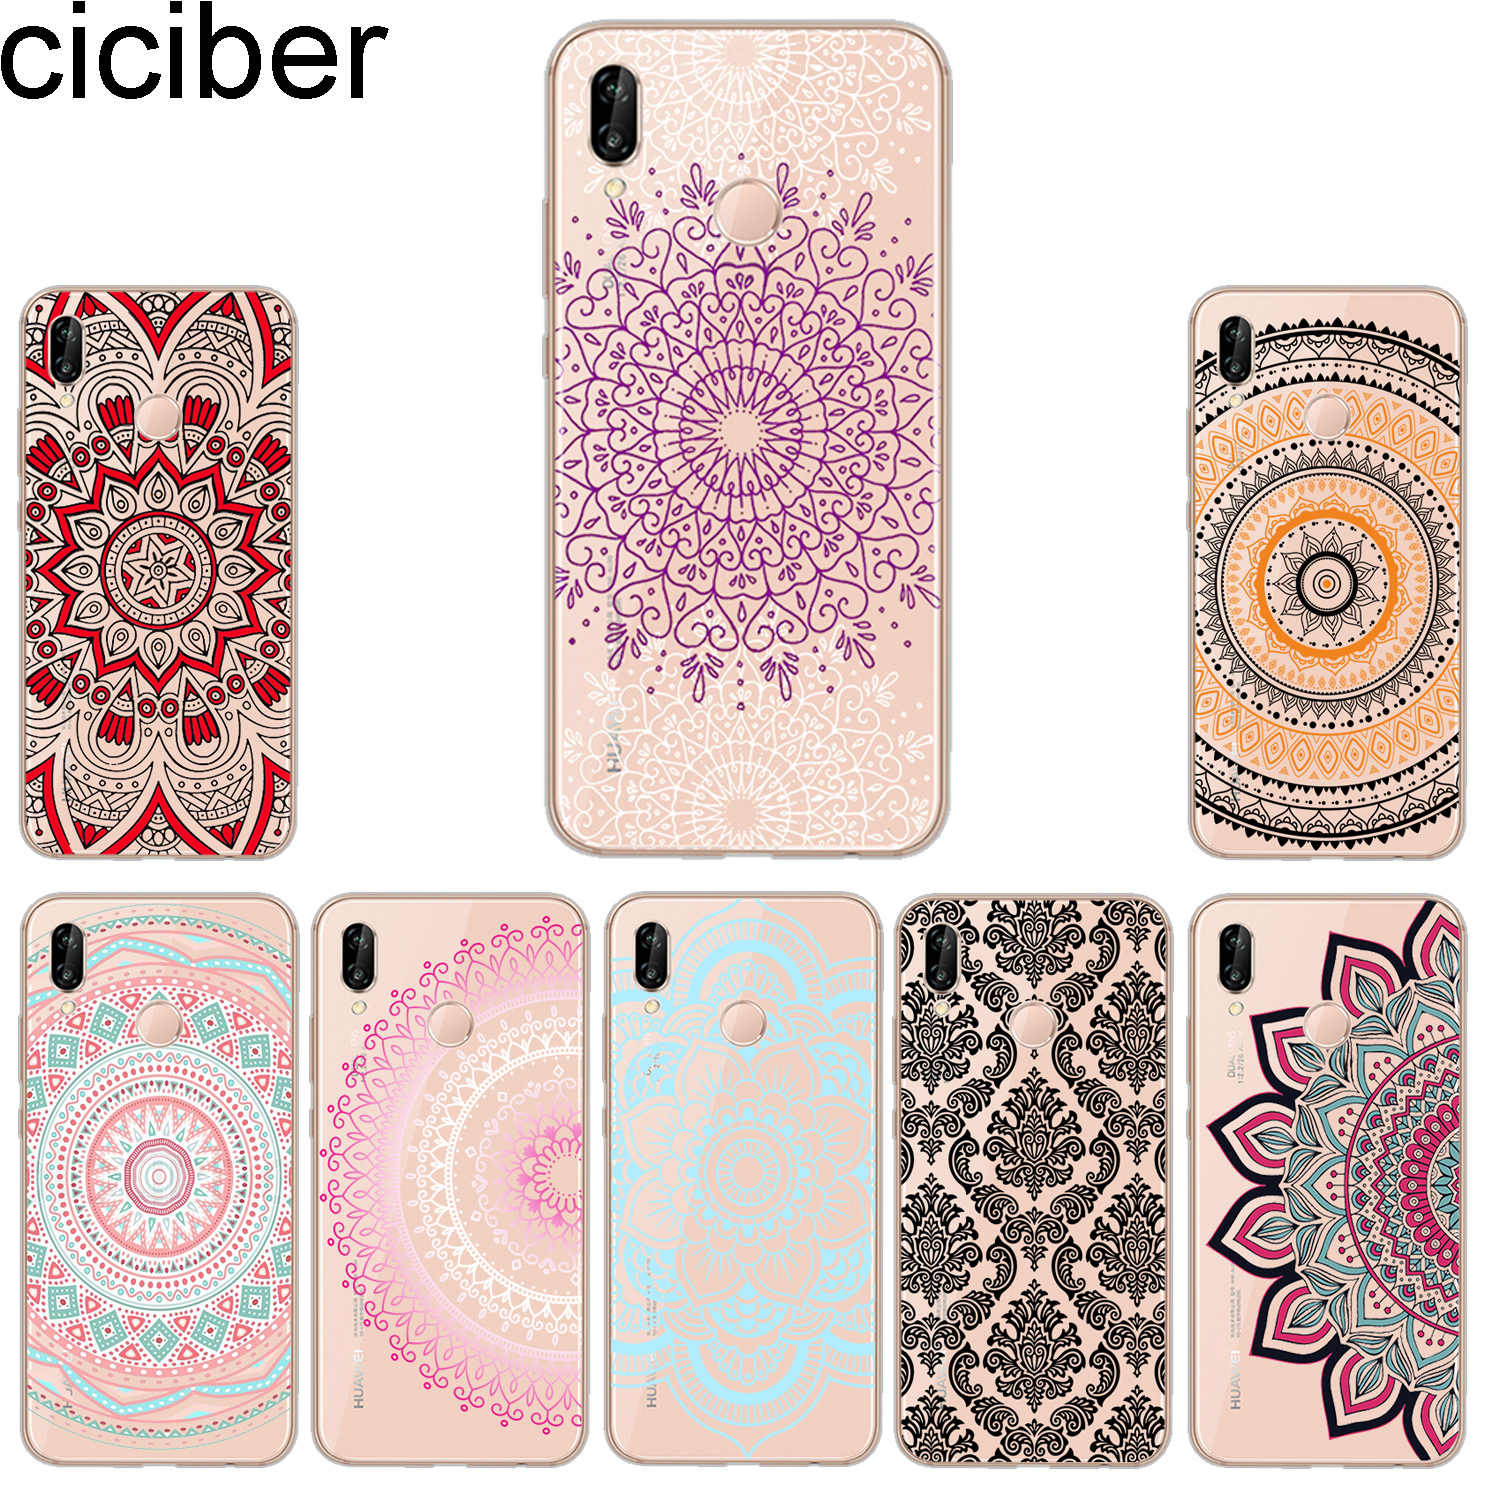 ciciber Phone Cases for Huawei P20 P8 P9 P10 Mate 20 10 9 Lite 2017 X Pro Soft TPU Back Cover for Huawei P Smart 2019 Mandala